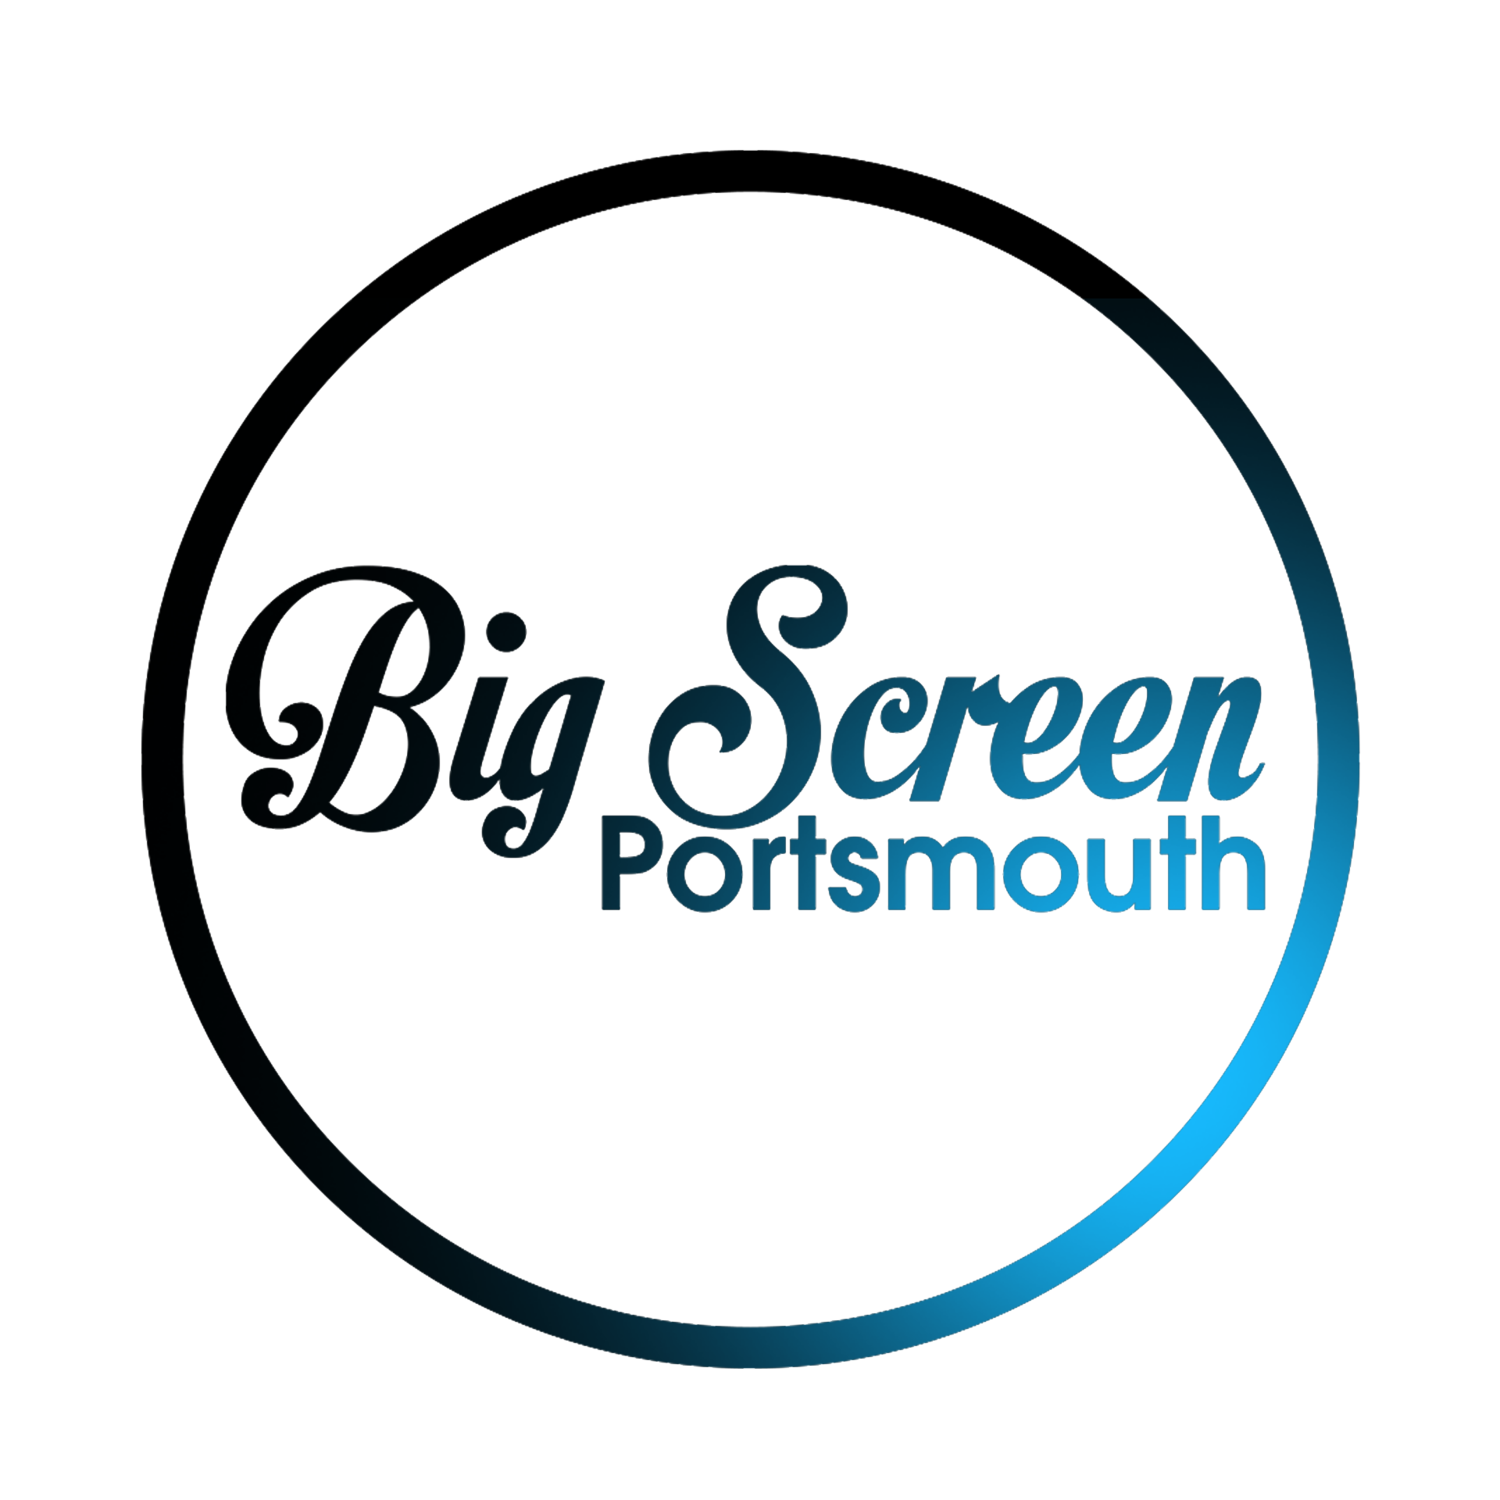 Big Screen Portsmouth